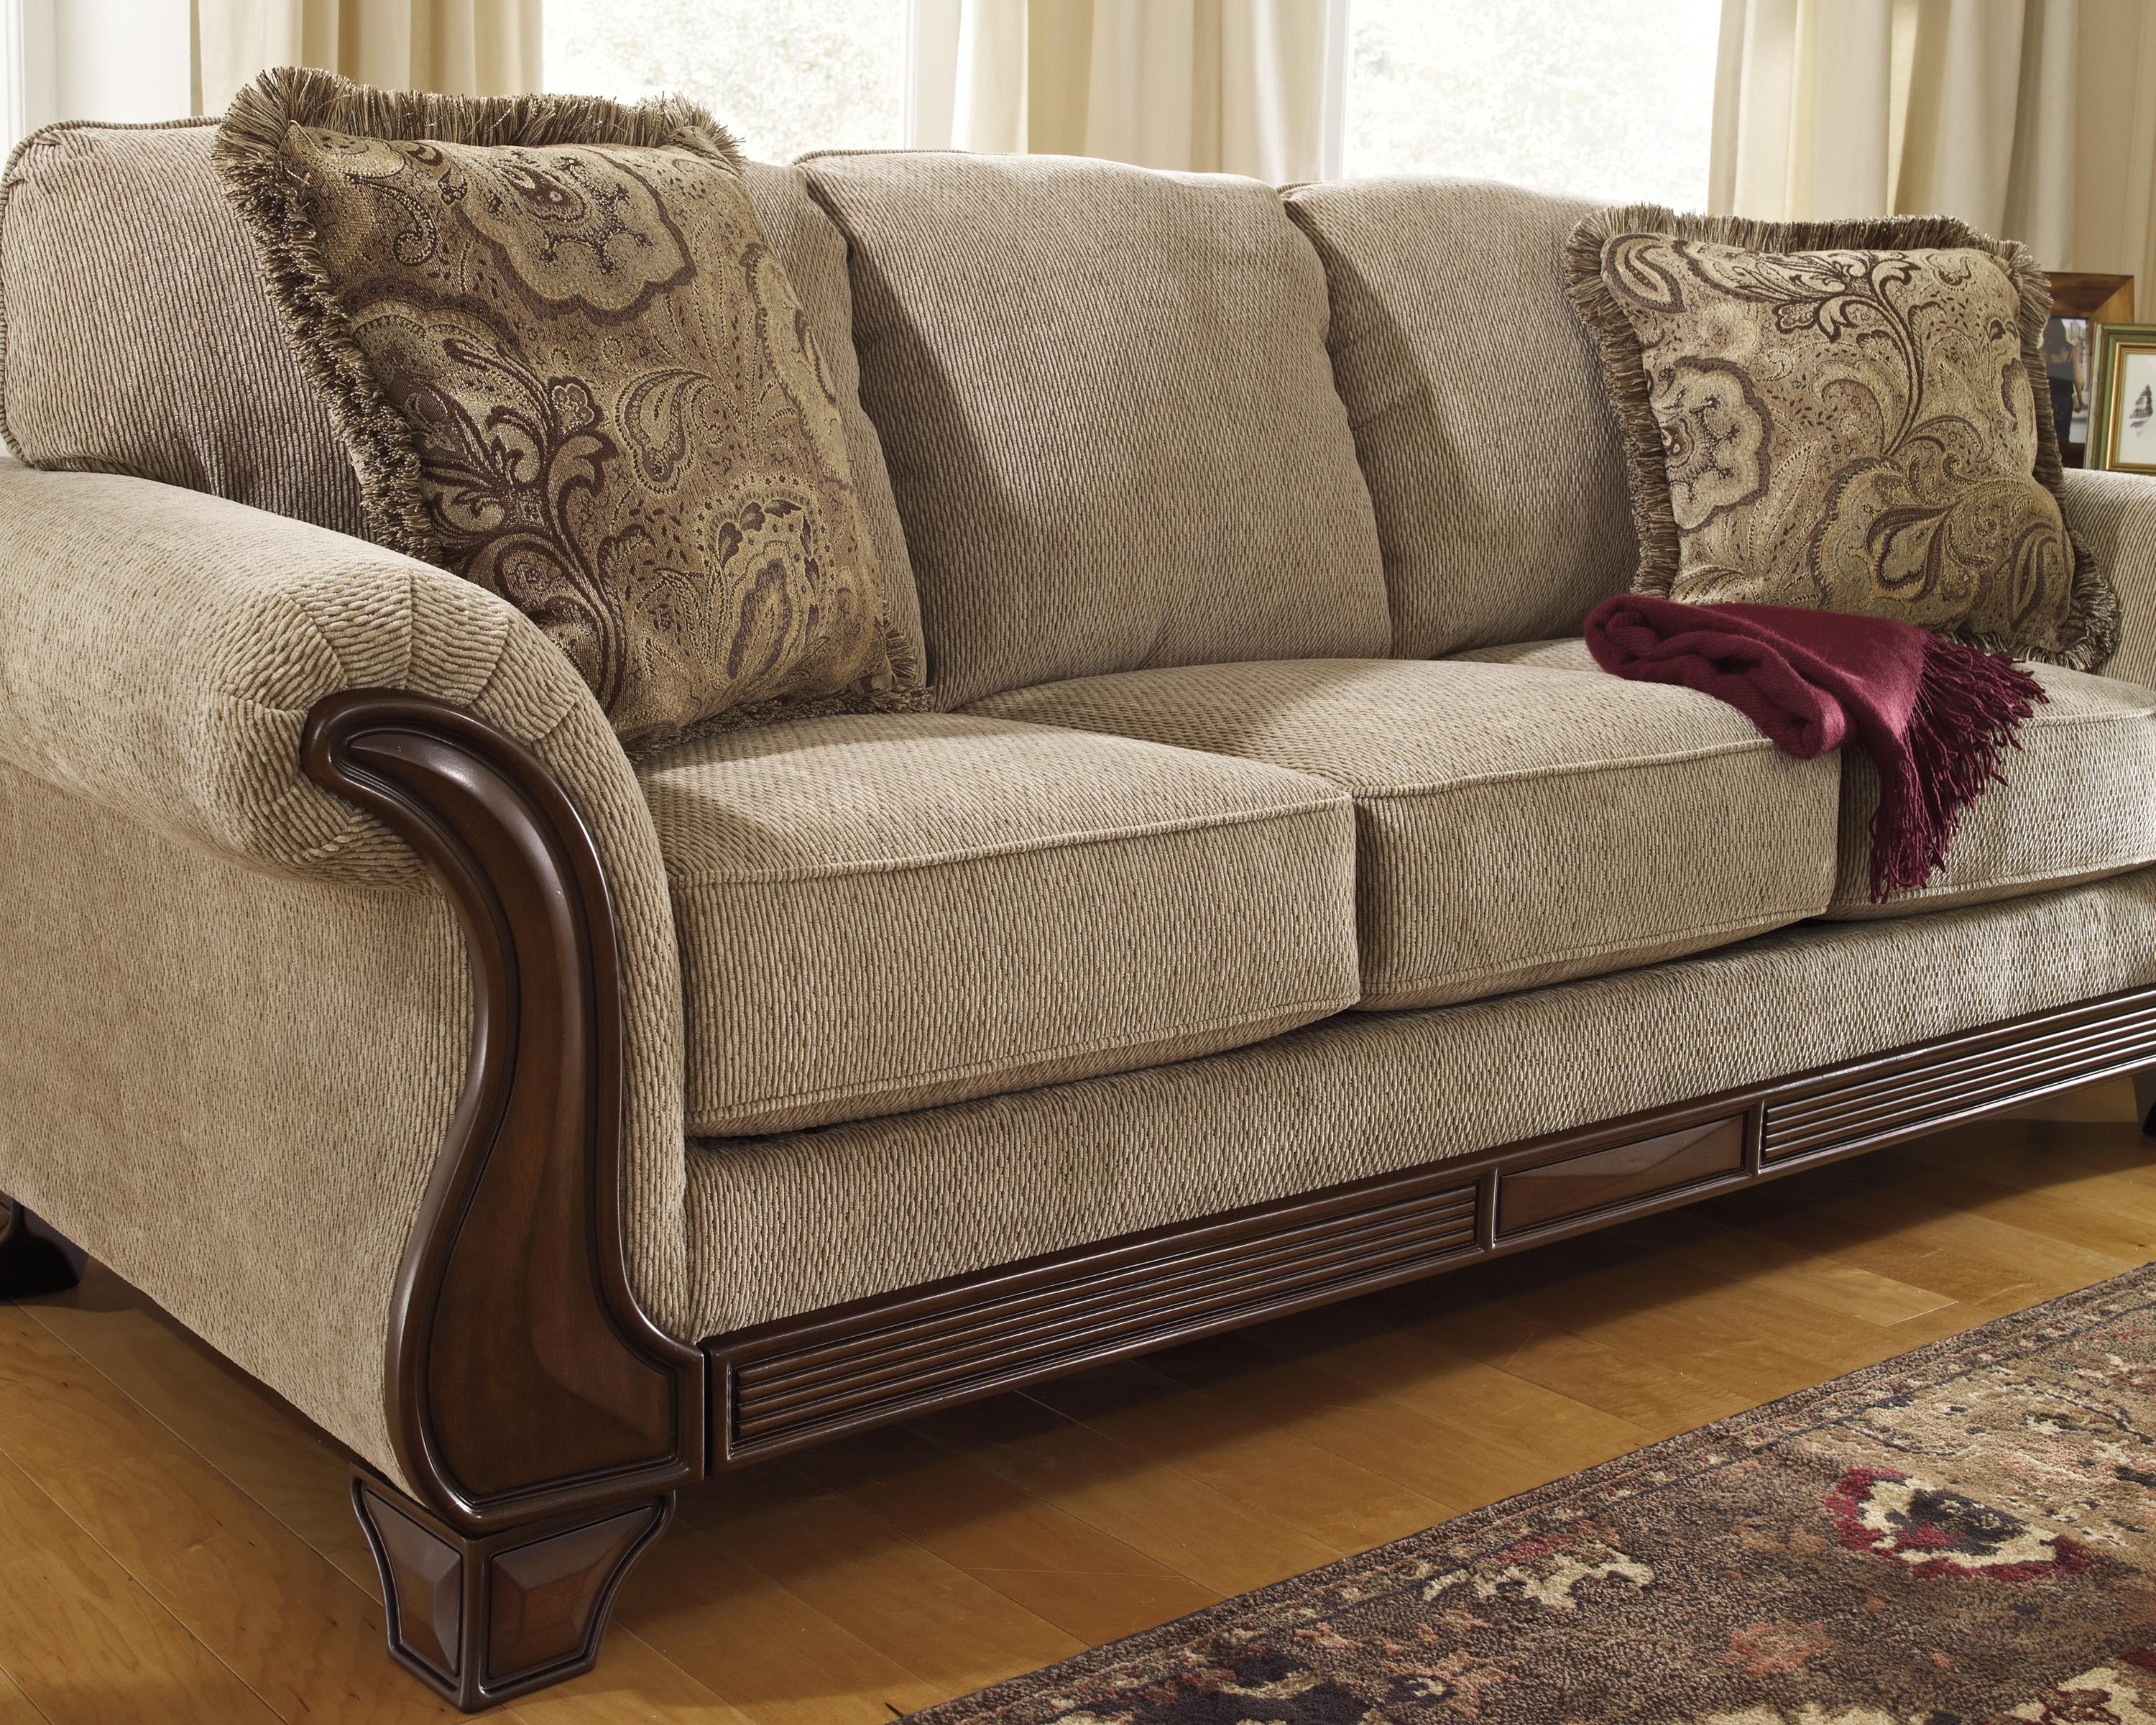 Brand new Sofa with Flared Arms & Exposed Wood Accents by Signature Design  ZR69